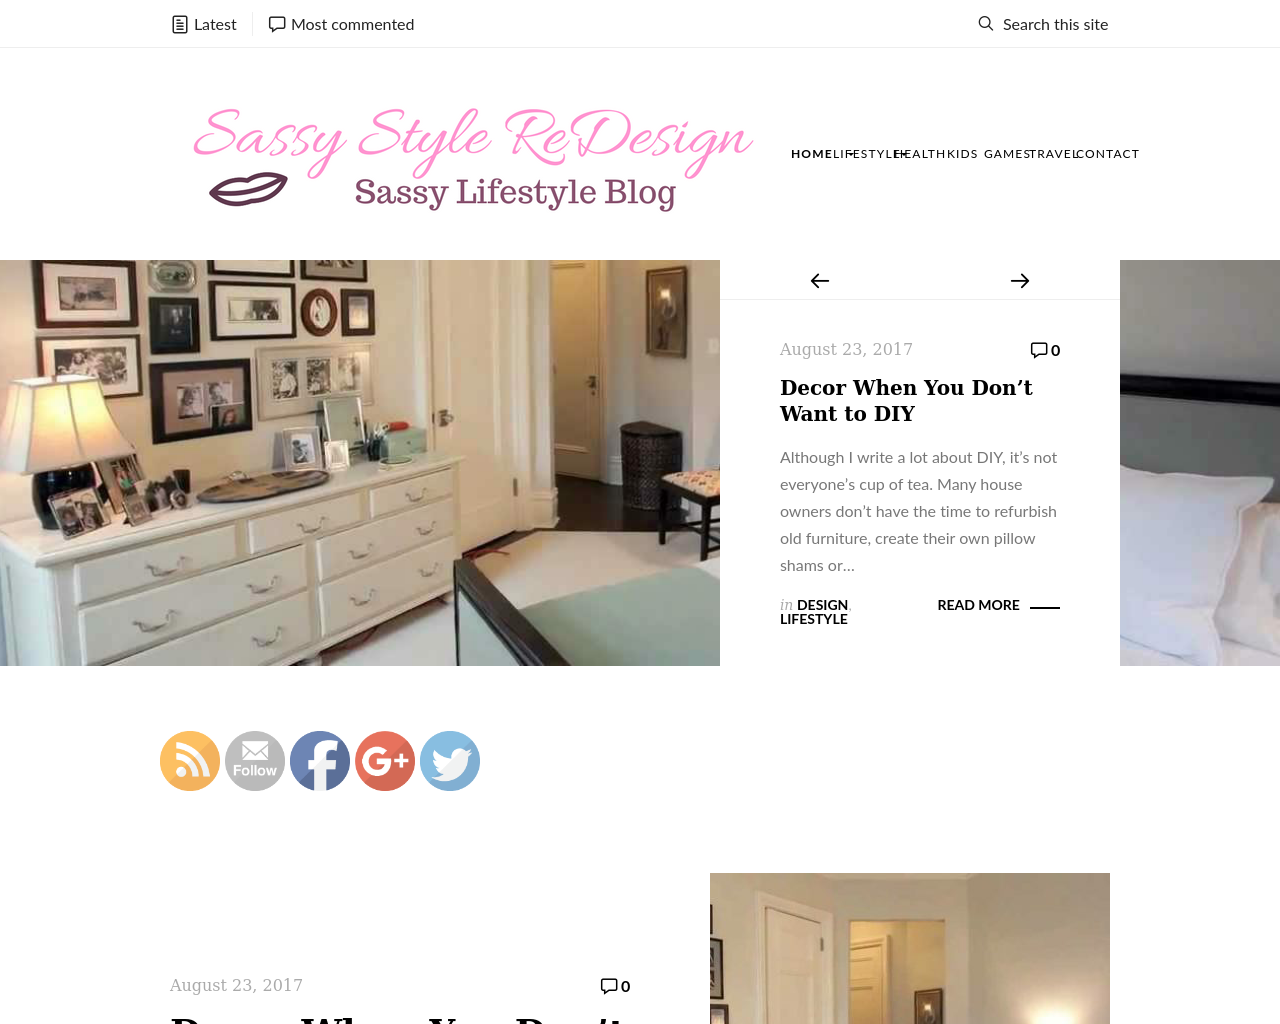 Sassy-Style-Interior-Redesign-Advertising-Reviews-Pricing